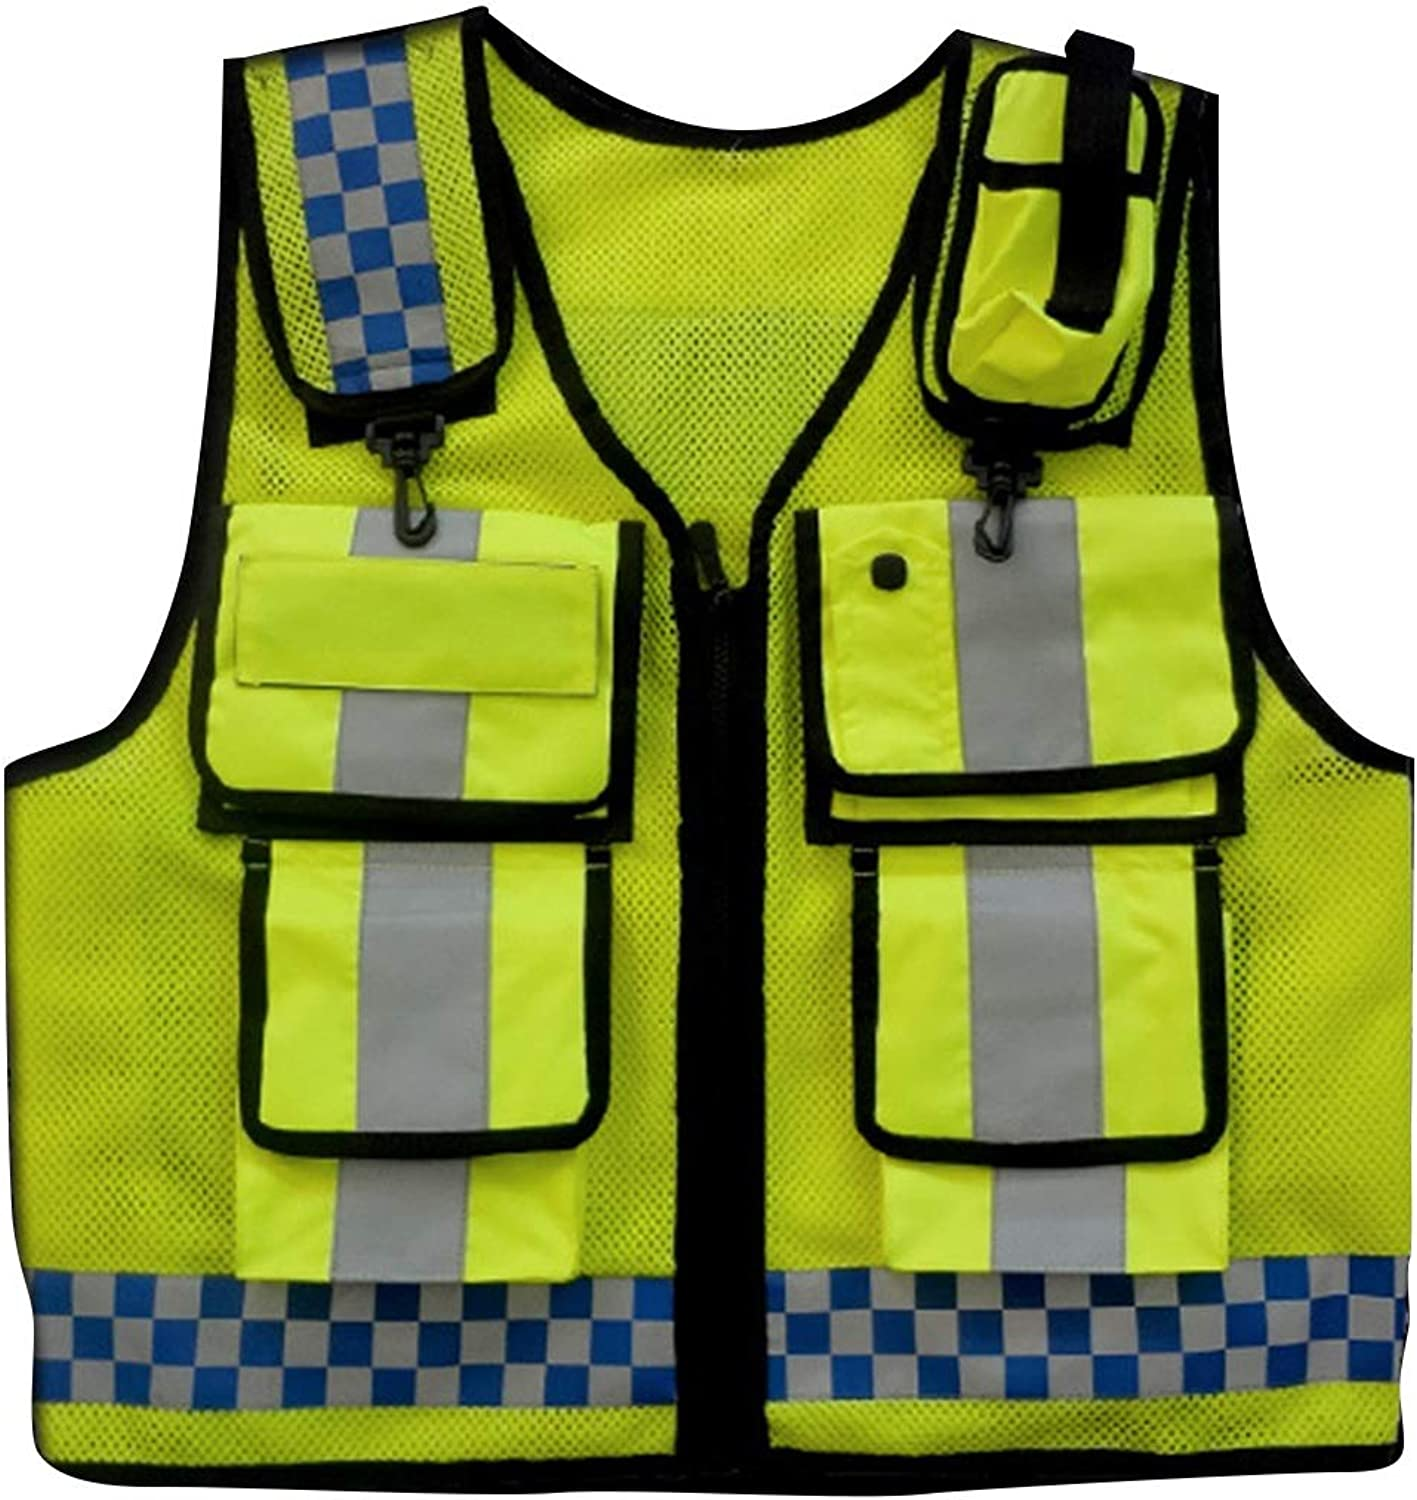 CTARCROW Durable, Reflective Vest Safety Best Fluorescent Belt Unique Highly Visible Work Joke Bike Bicycle Traffic Guard Night Safety Check Fluorescent Reflection Safety Vest for Both Men and Women